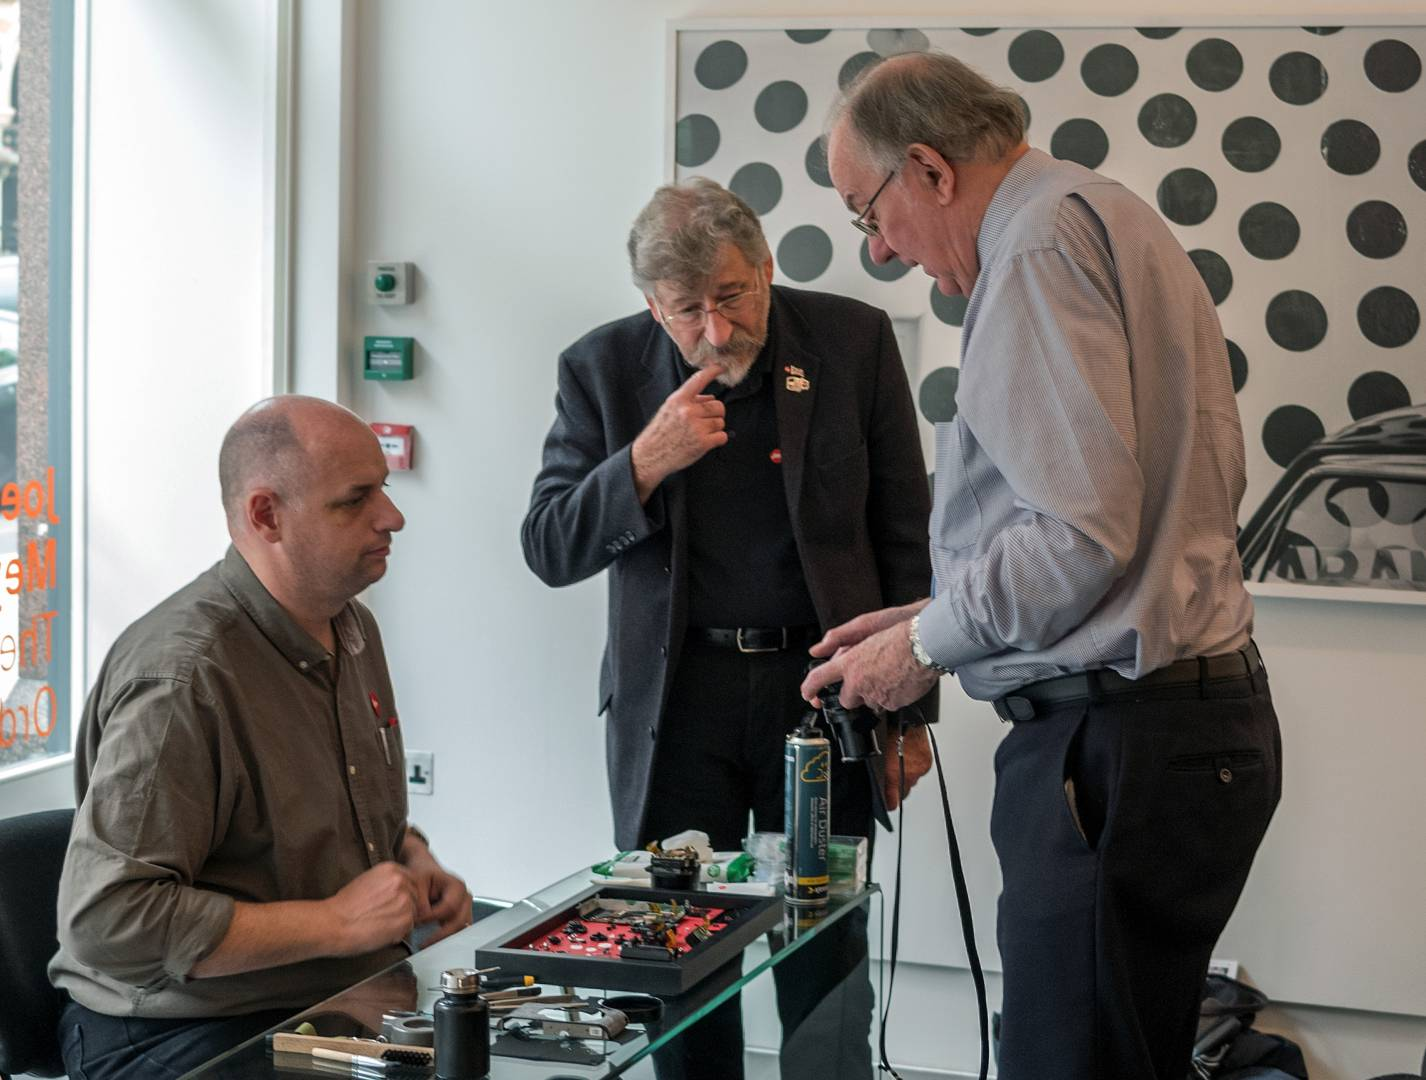 Peter Anderson discussing his Leica with technicial David Slater and Nobby Clark. Nobby co-edited the Leica Pocket Book 8th Edition, now supplied by Red Dot Books.